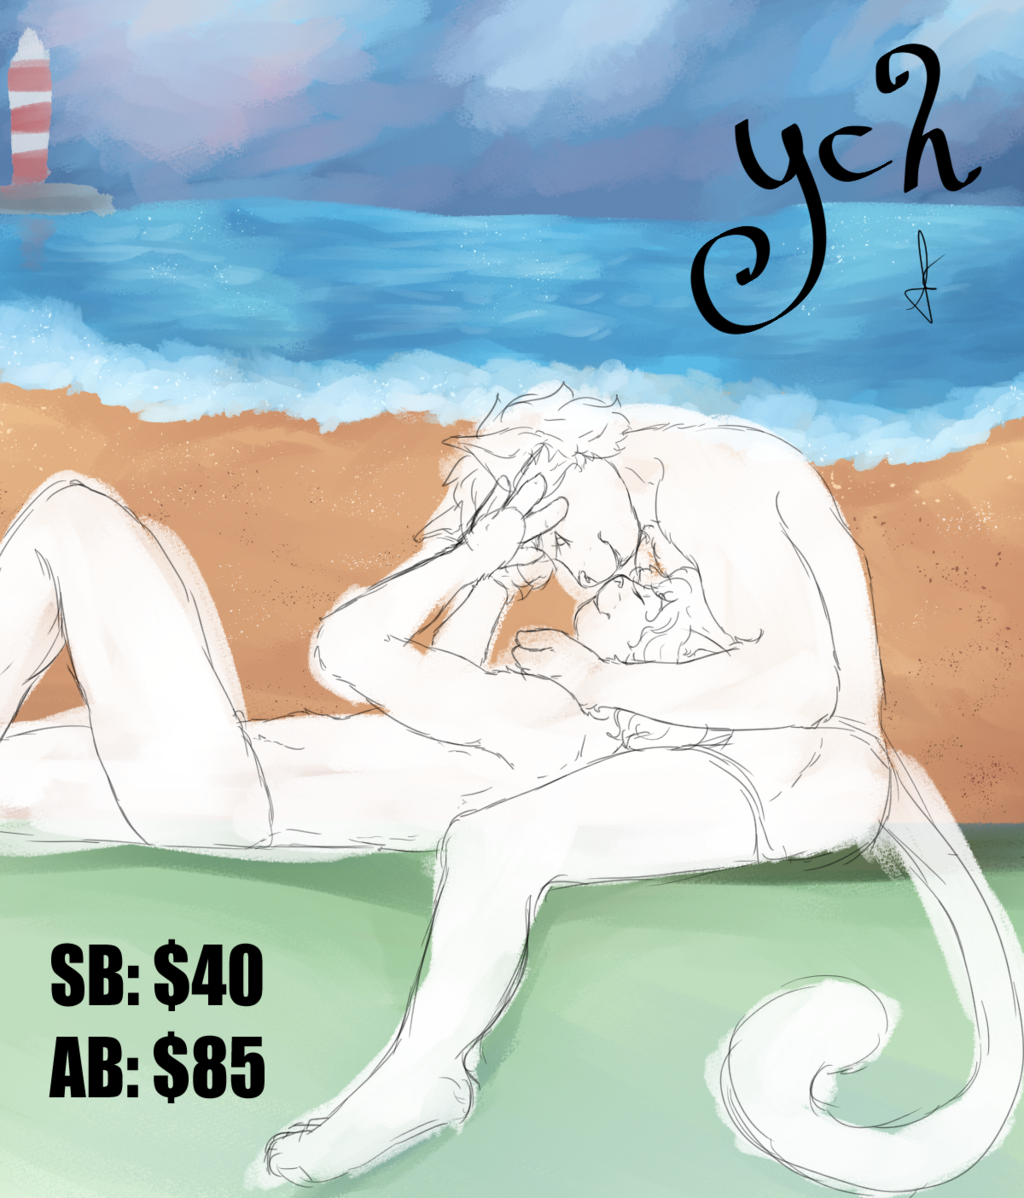 OPEN YCH AUCTION - Unrestrained Summer Love